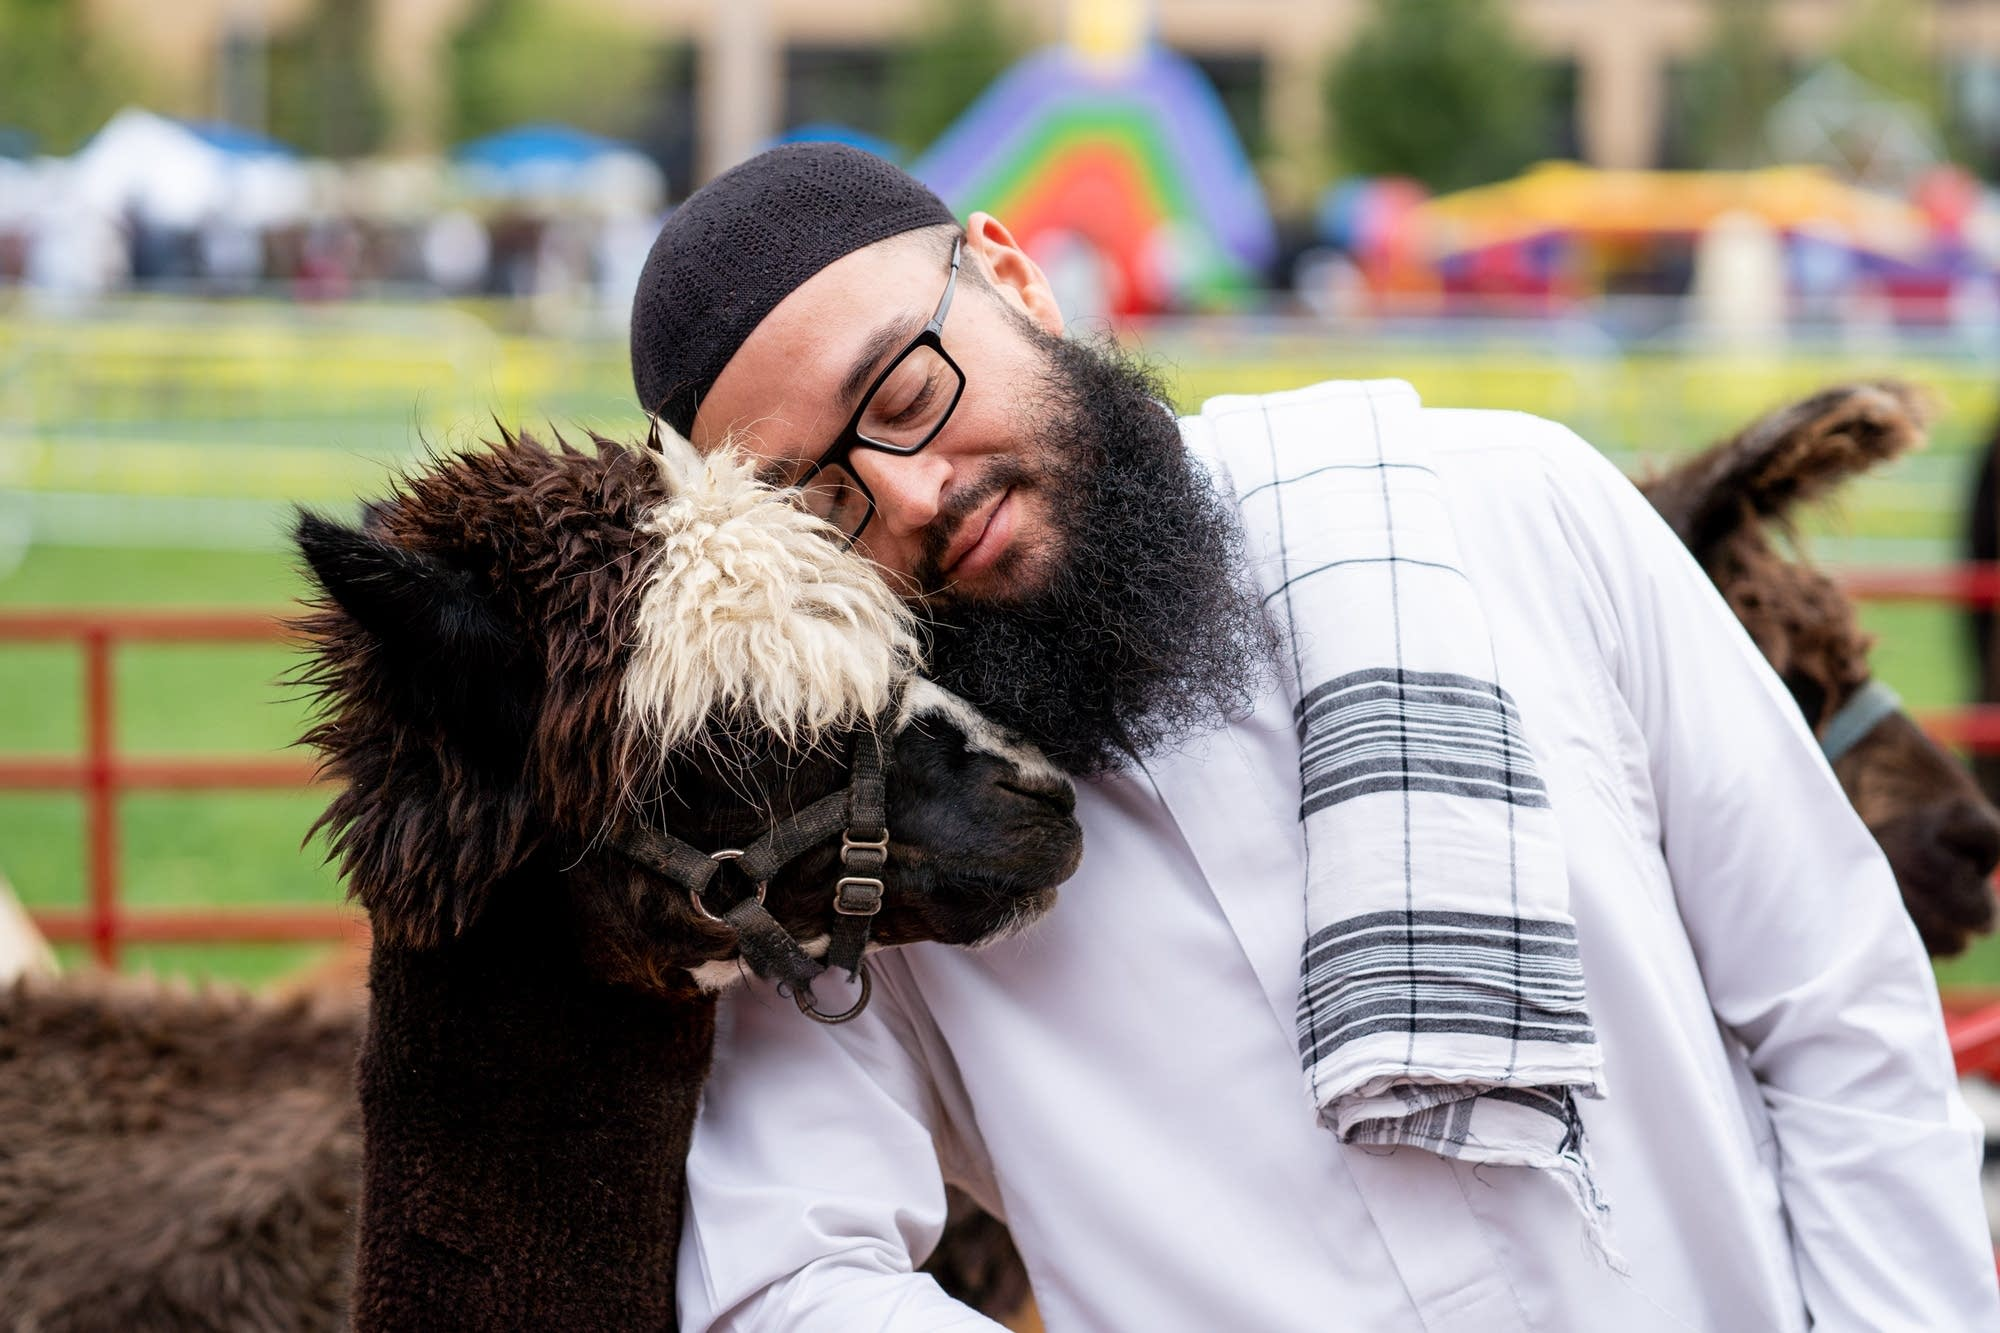 Chris Mendez snuggles with an alpaca named Al.